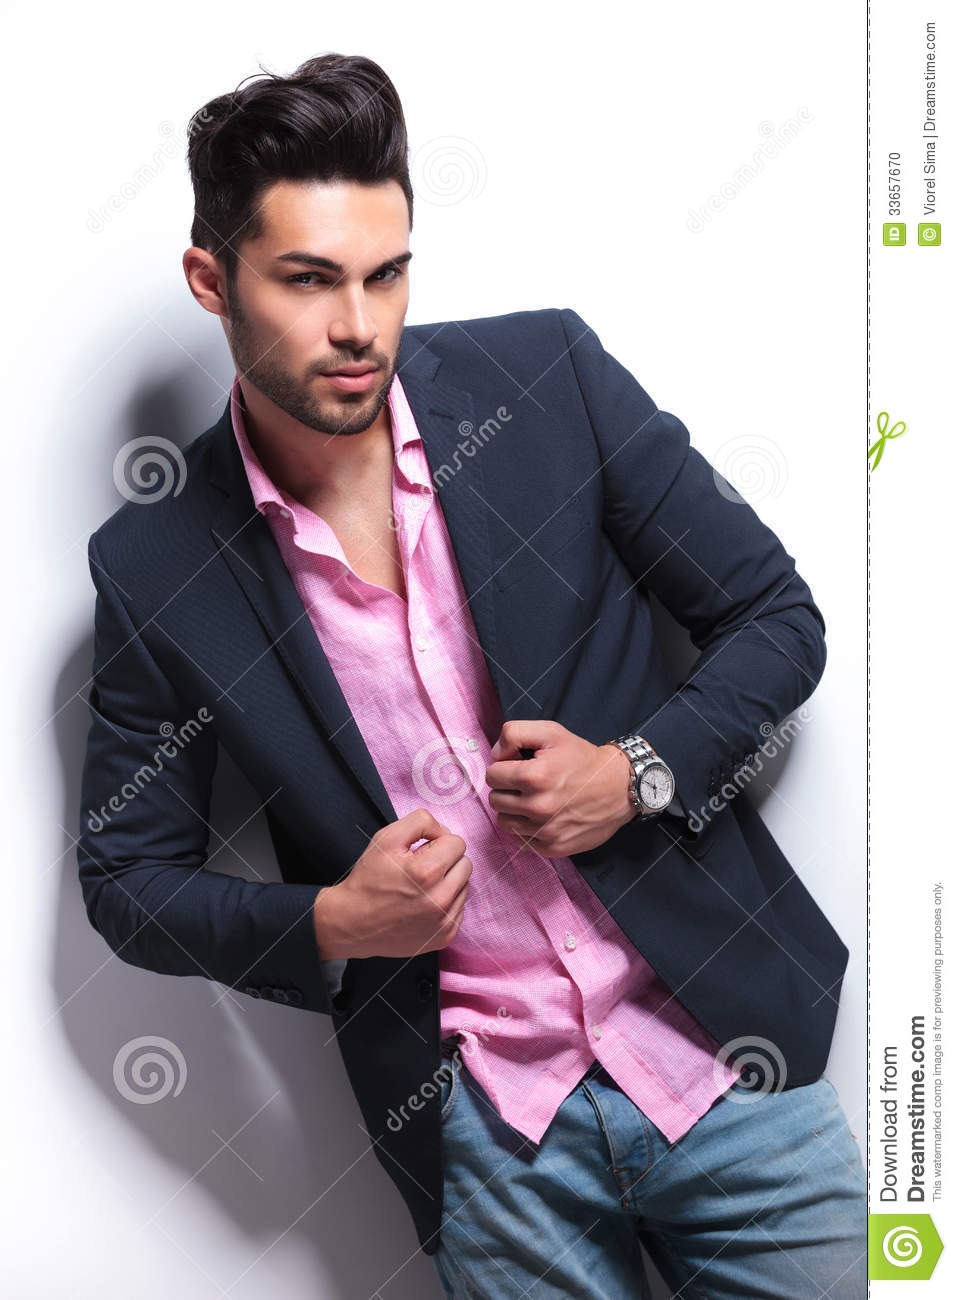 jeune homme de mode tenant des mains sur la veste de costume photo stock image 33657670. Black Bedroom Furniture Sets. Home Design Ideas